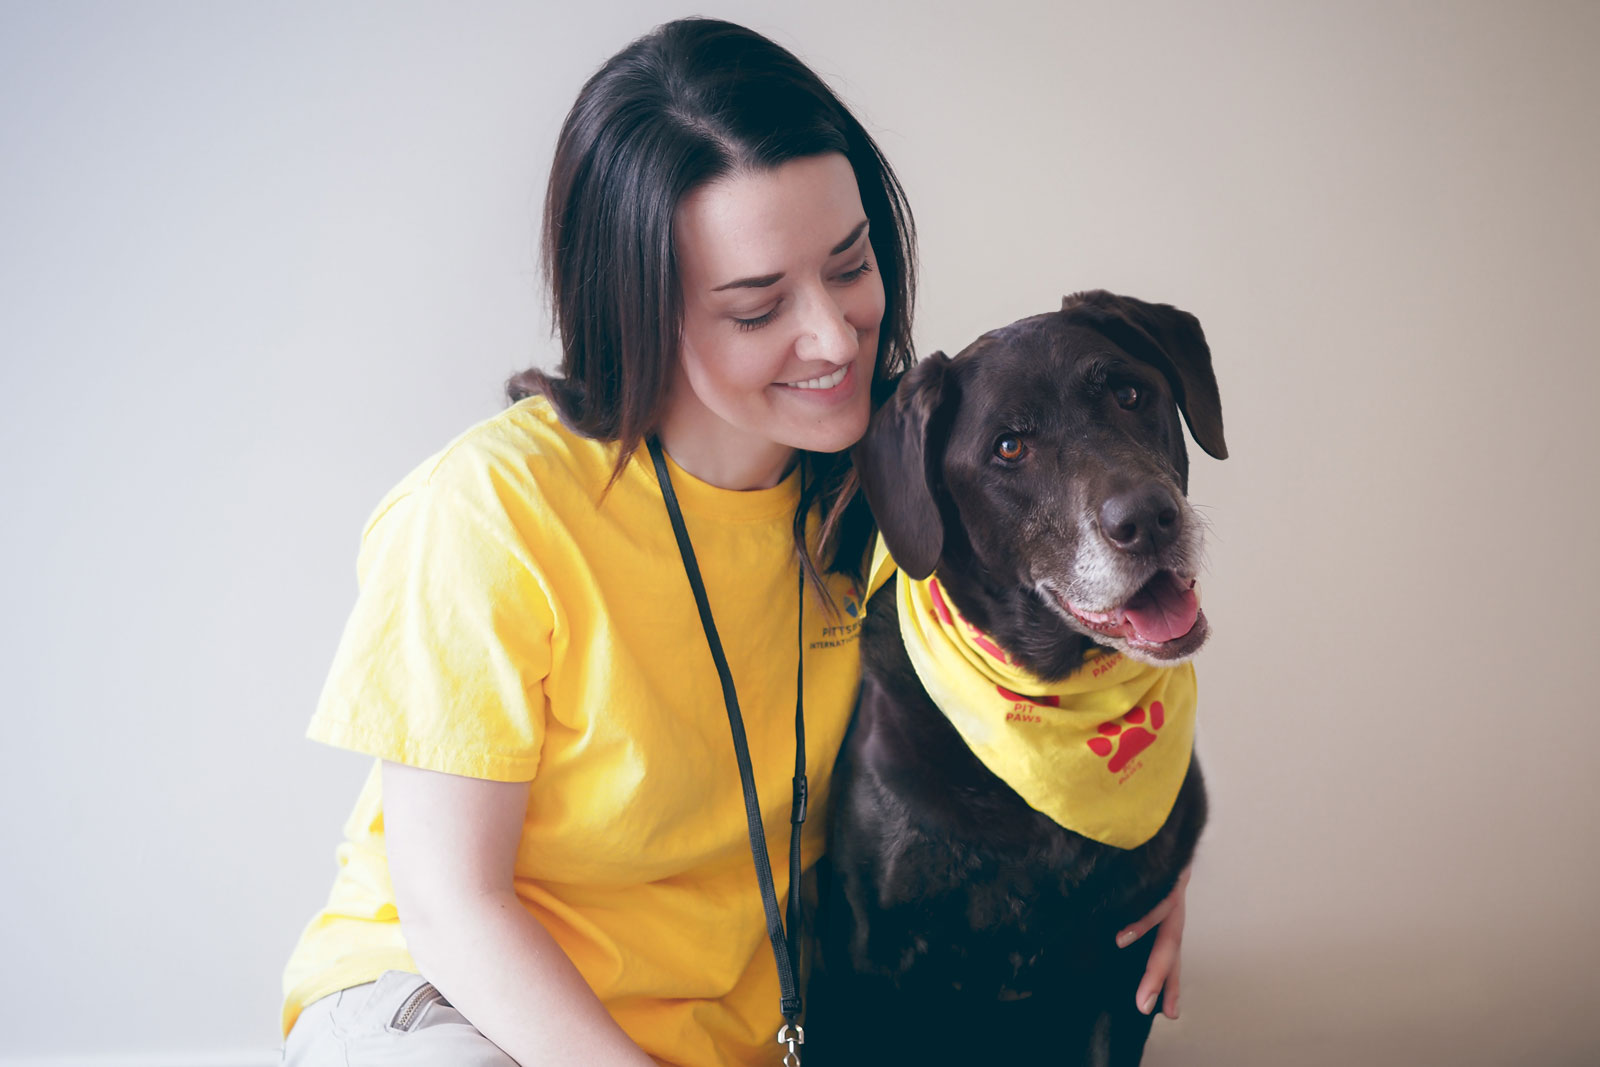 Tara Hoover and her Chocolate Lab Juno work as a therapy dog team